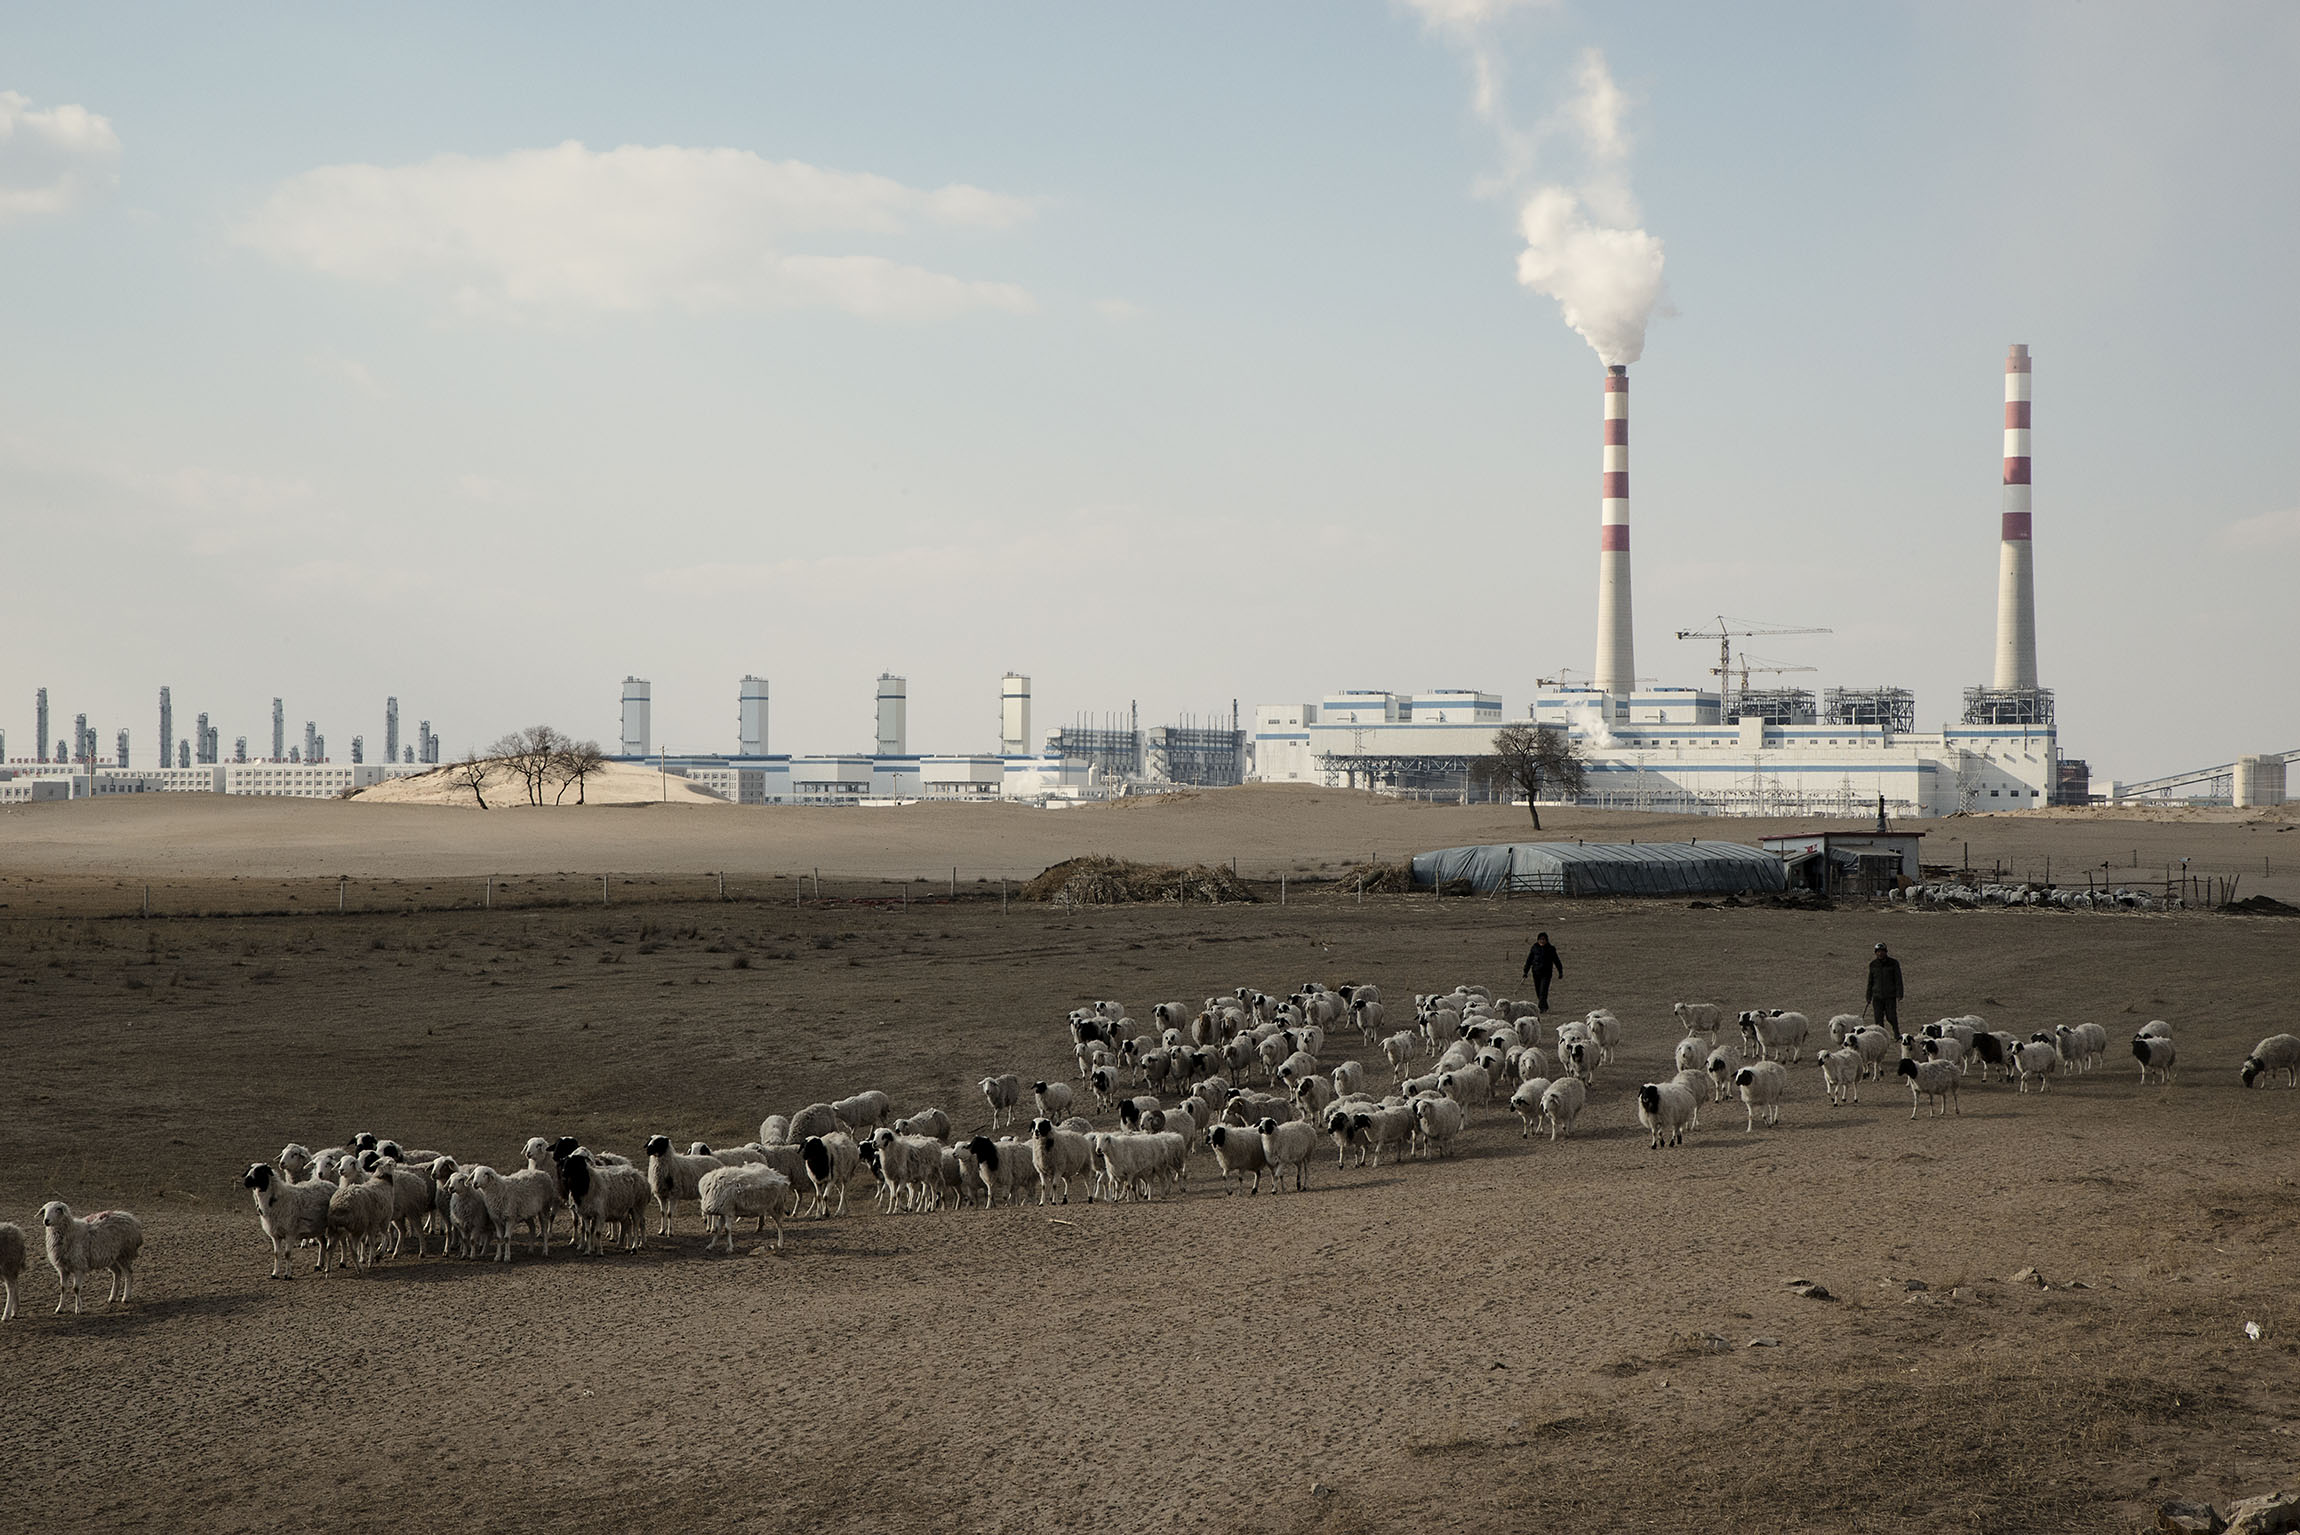 In Hexingten (Inner Mongolia) a herder takes his sheep grazing nearby a coal to gas power plant, polluting the water and the air. Local herders have been protesting the plant and ended up in jail. Throughout Inner Mongolia, herders and nomads have had to give up their land for government projects : mining, power plants, military zones, leading some to suicides and many to prison.